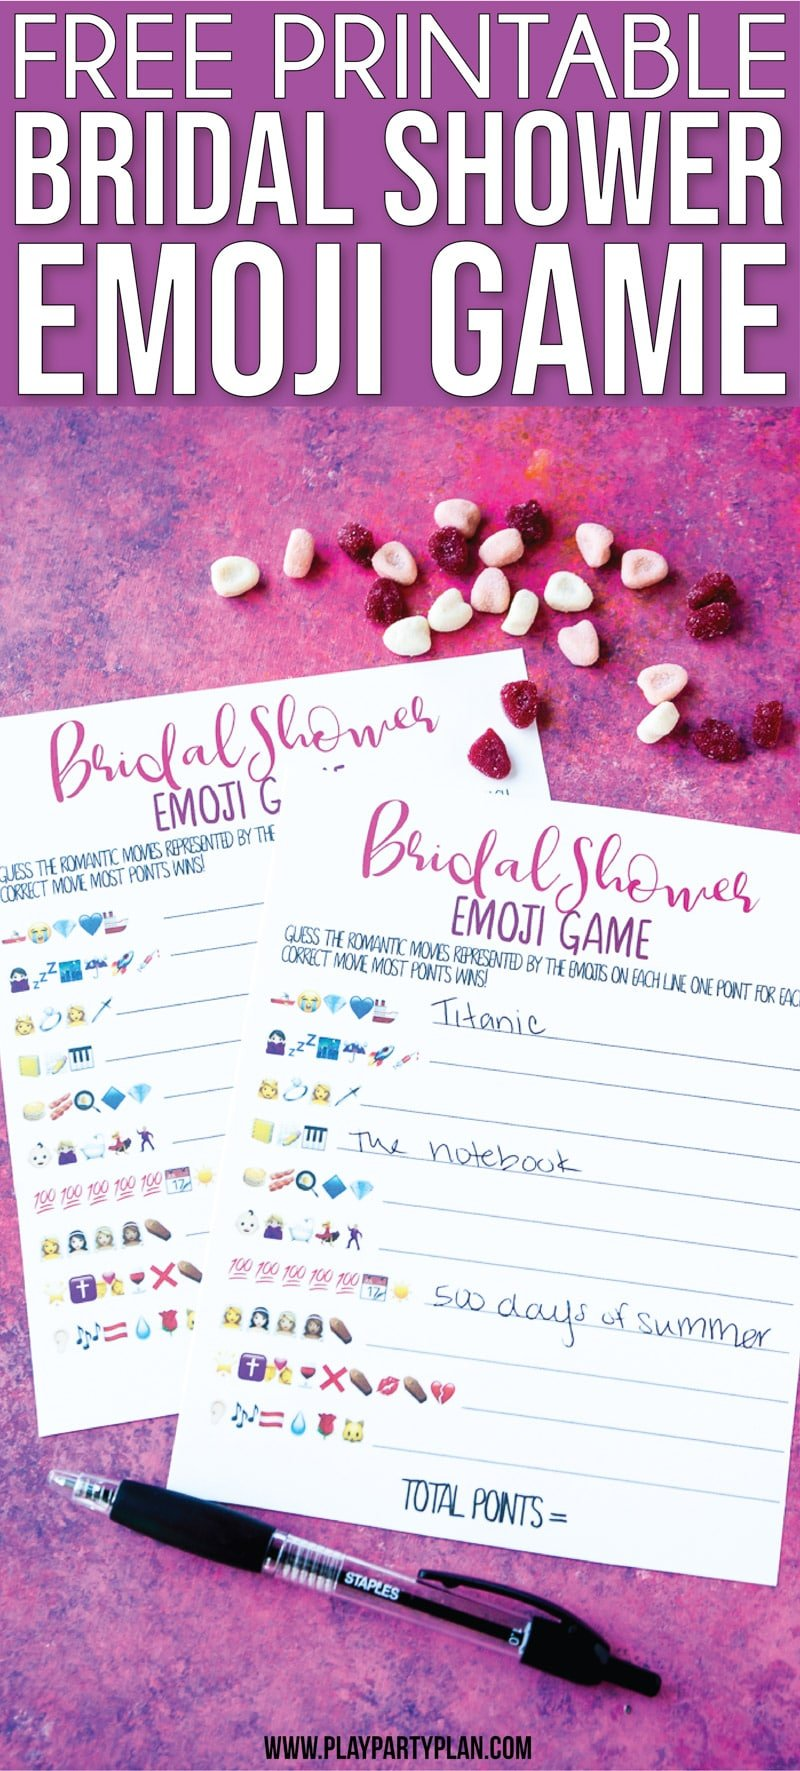 picture relating to Emoji Bridal Shower Game Free Printable named Absolutely free Printable Bridal Shower Standing the Emoji Activity